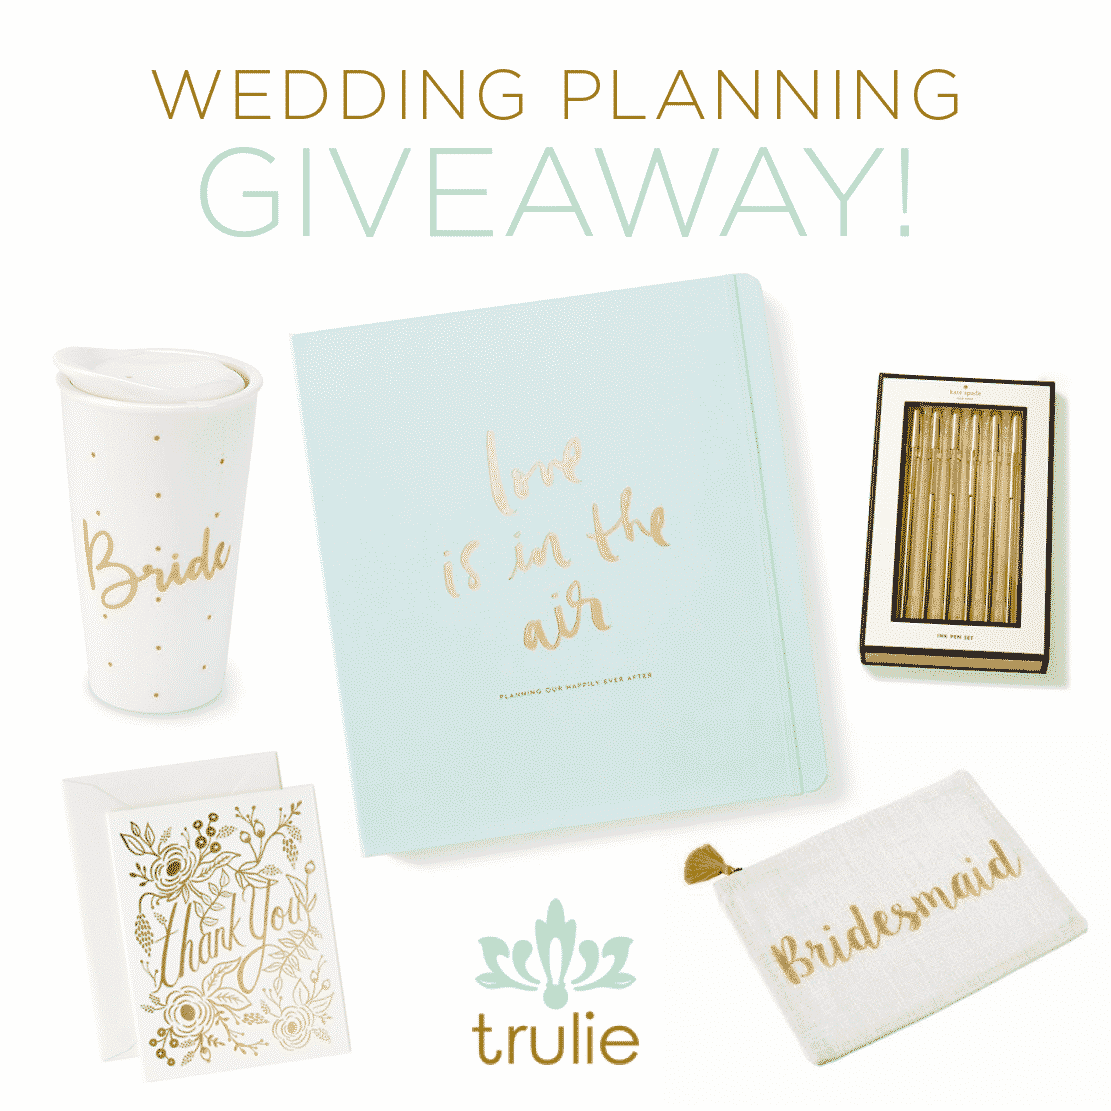 Don't miss out on this amazing wedding essentials giveaway from Trulie! They have the best gifts and products for savvy and stylish women!